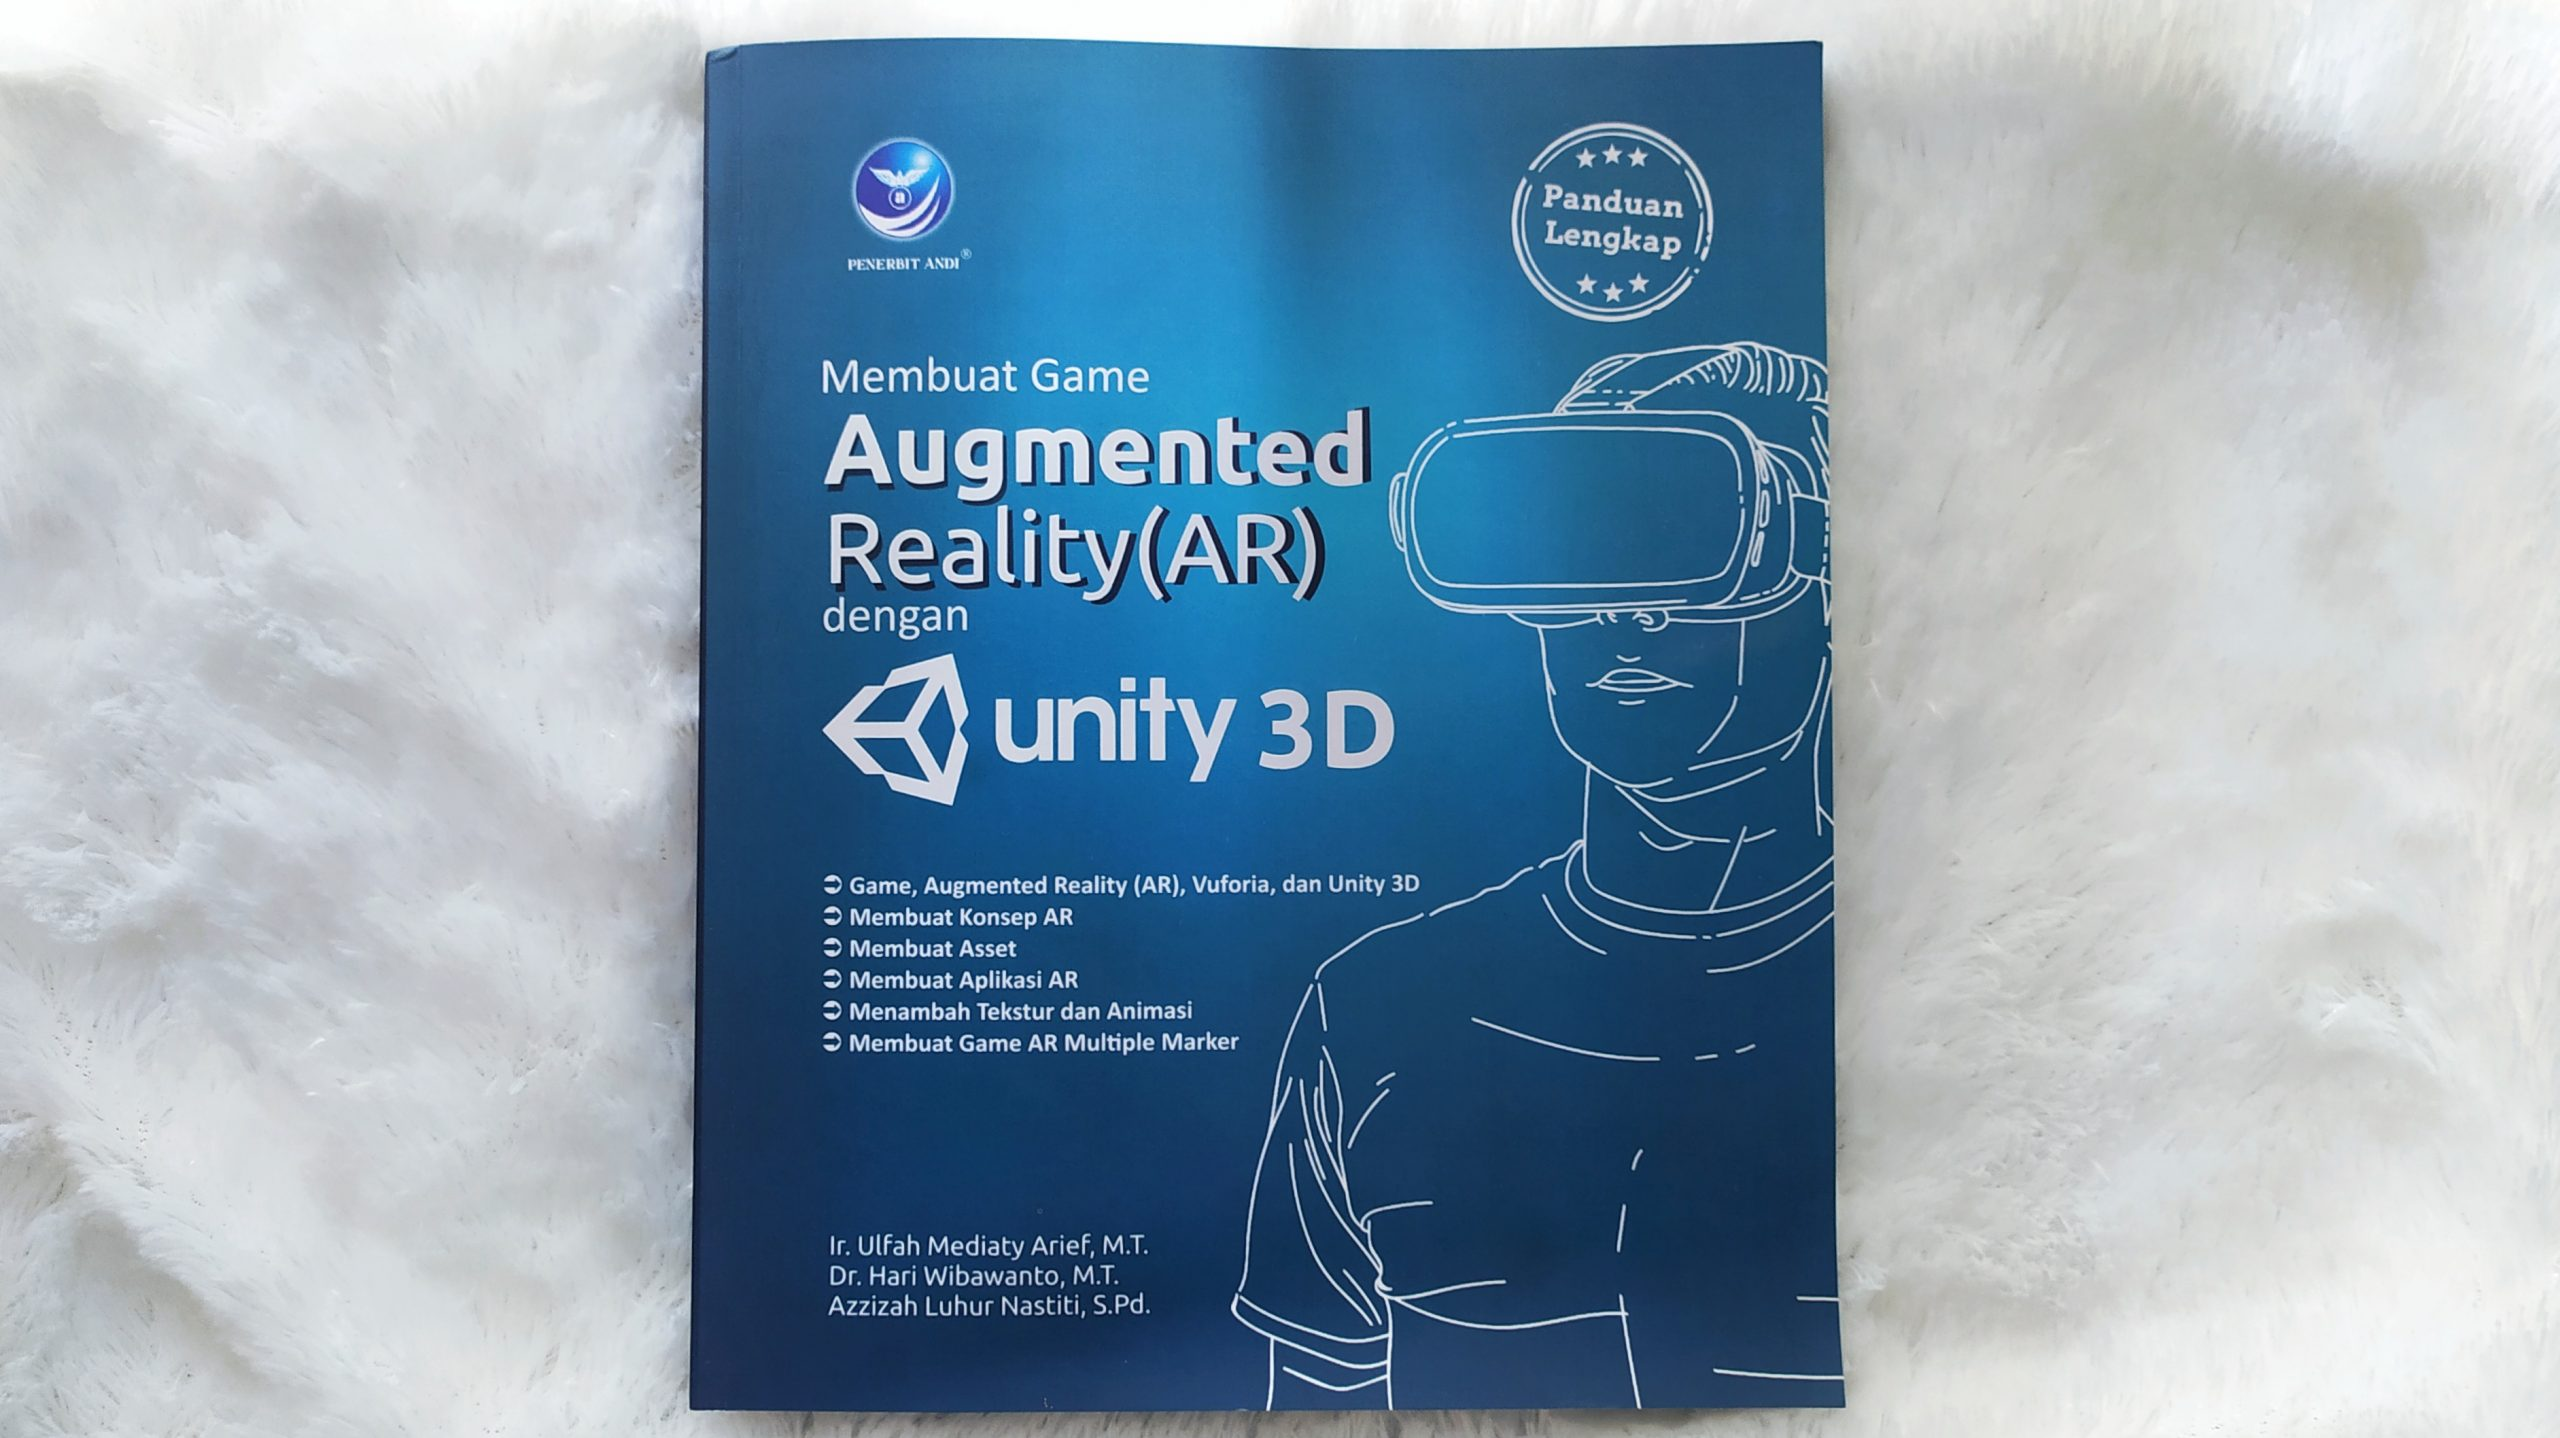 My Project : Augmented Reality Game 'ARChemy'